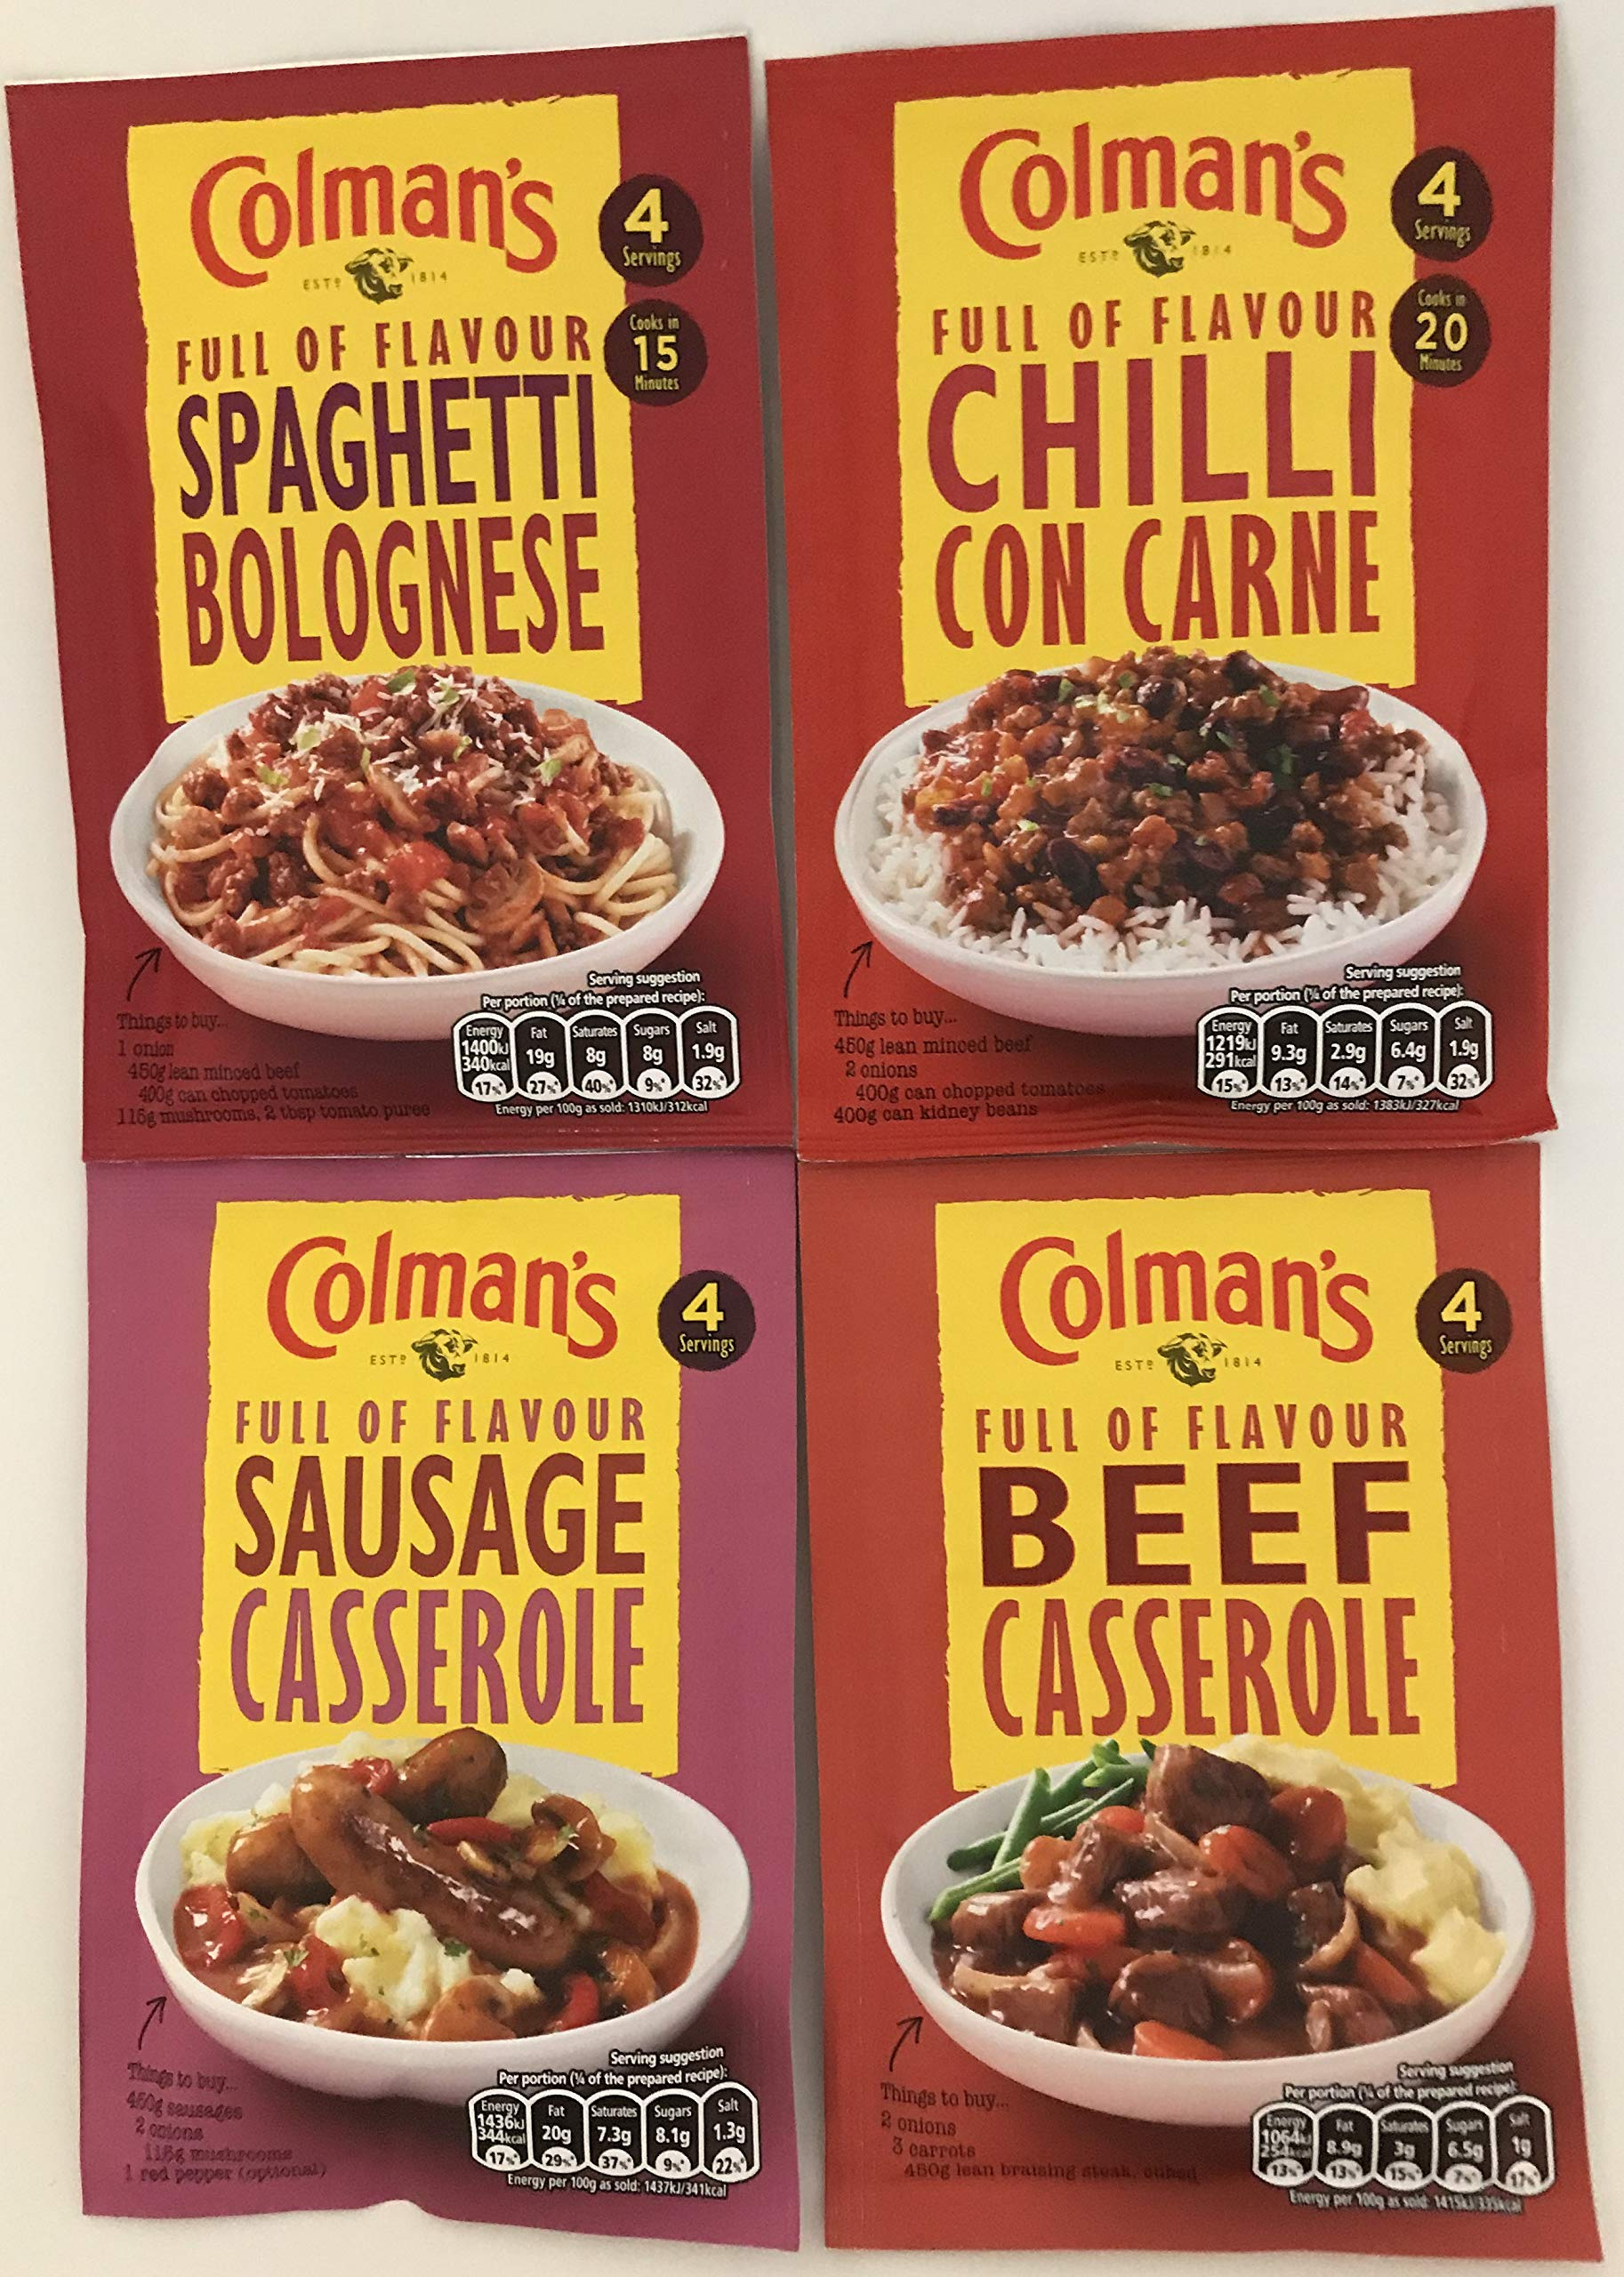 Colman's Full of Flavour Seasoning Mixes Multipack - 2 of Each Flavour - Chilli Con Carne, Spaghetti Bolognese, Beef Casserole, Sausage Casserole